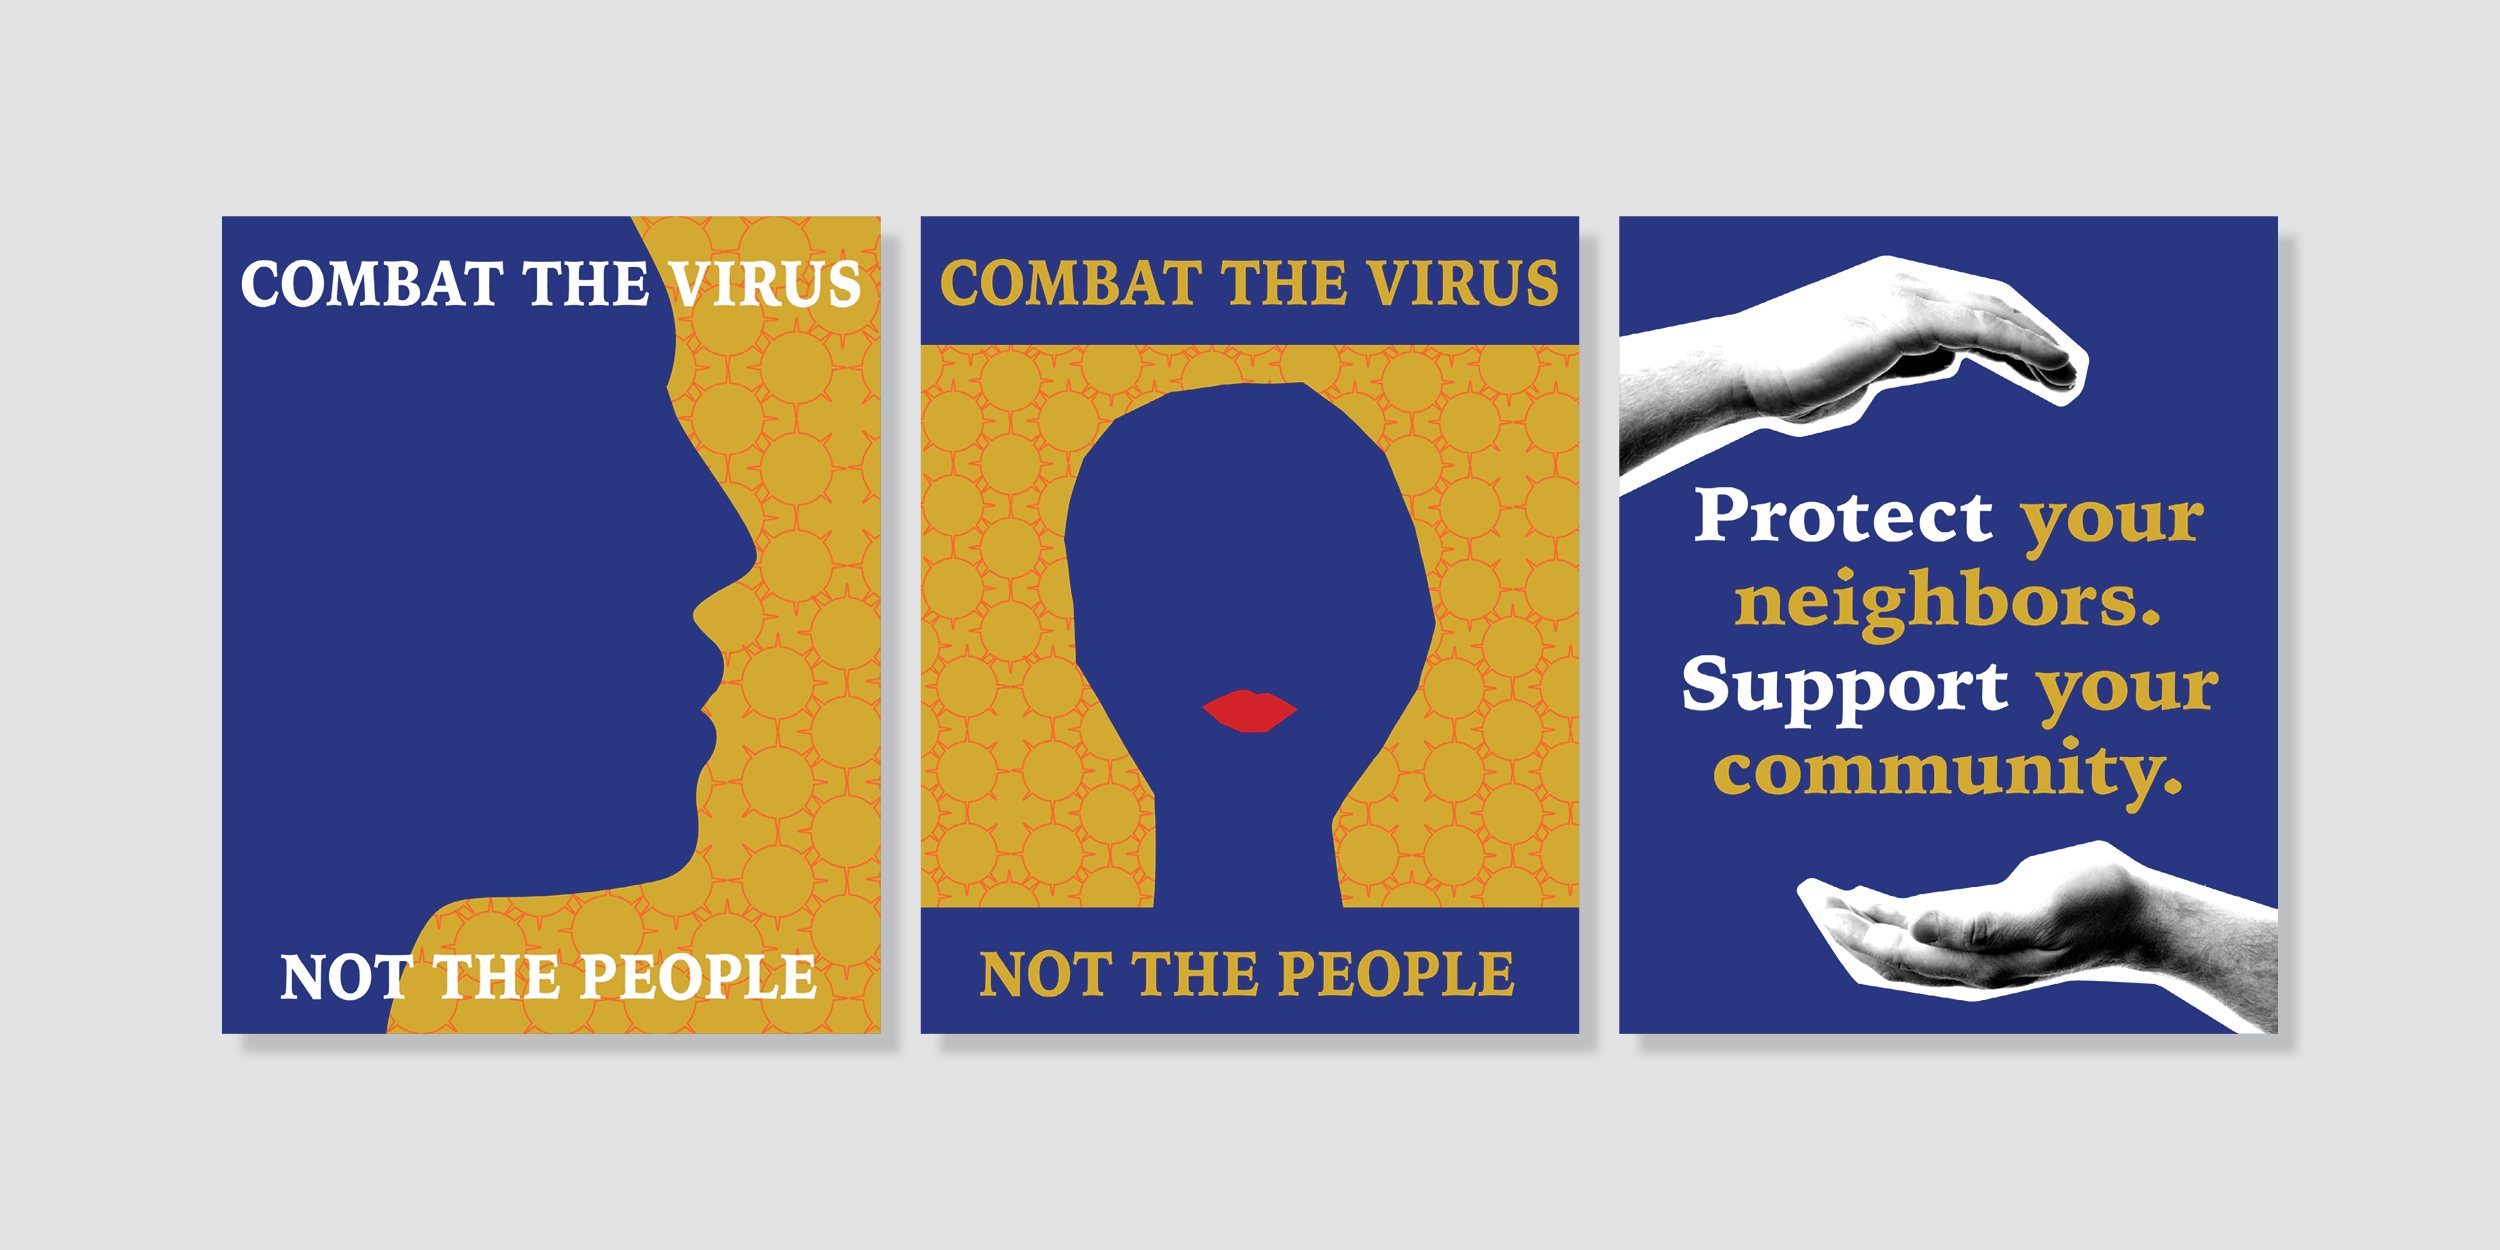 three graphic PSA posters on combating Covid placed side by side